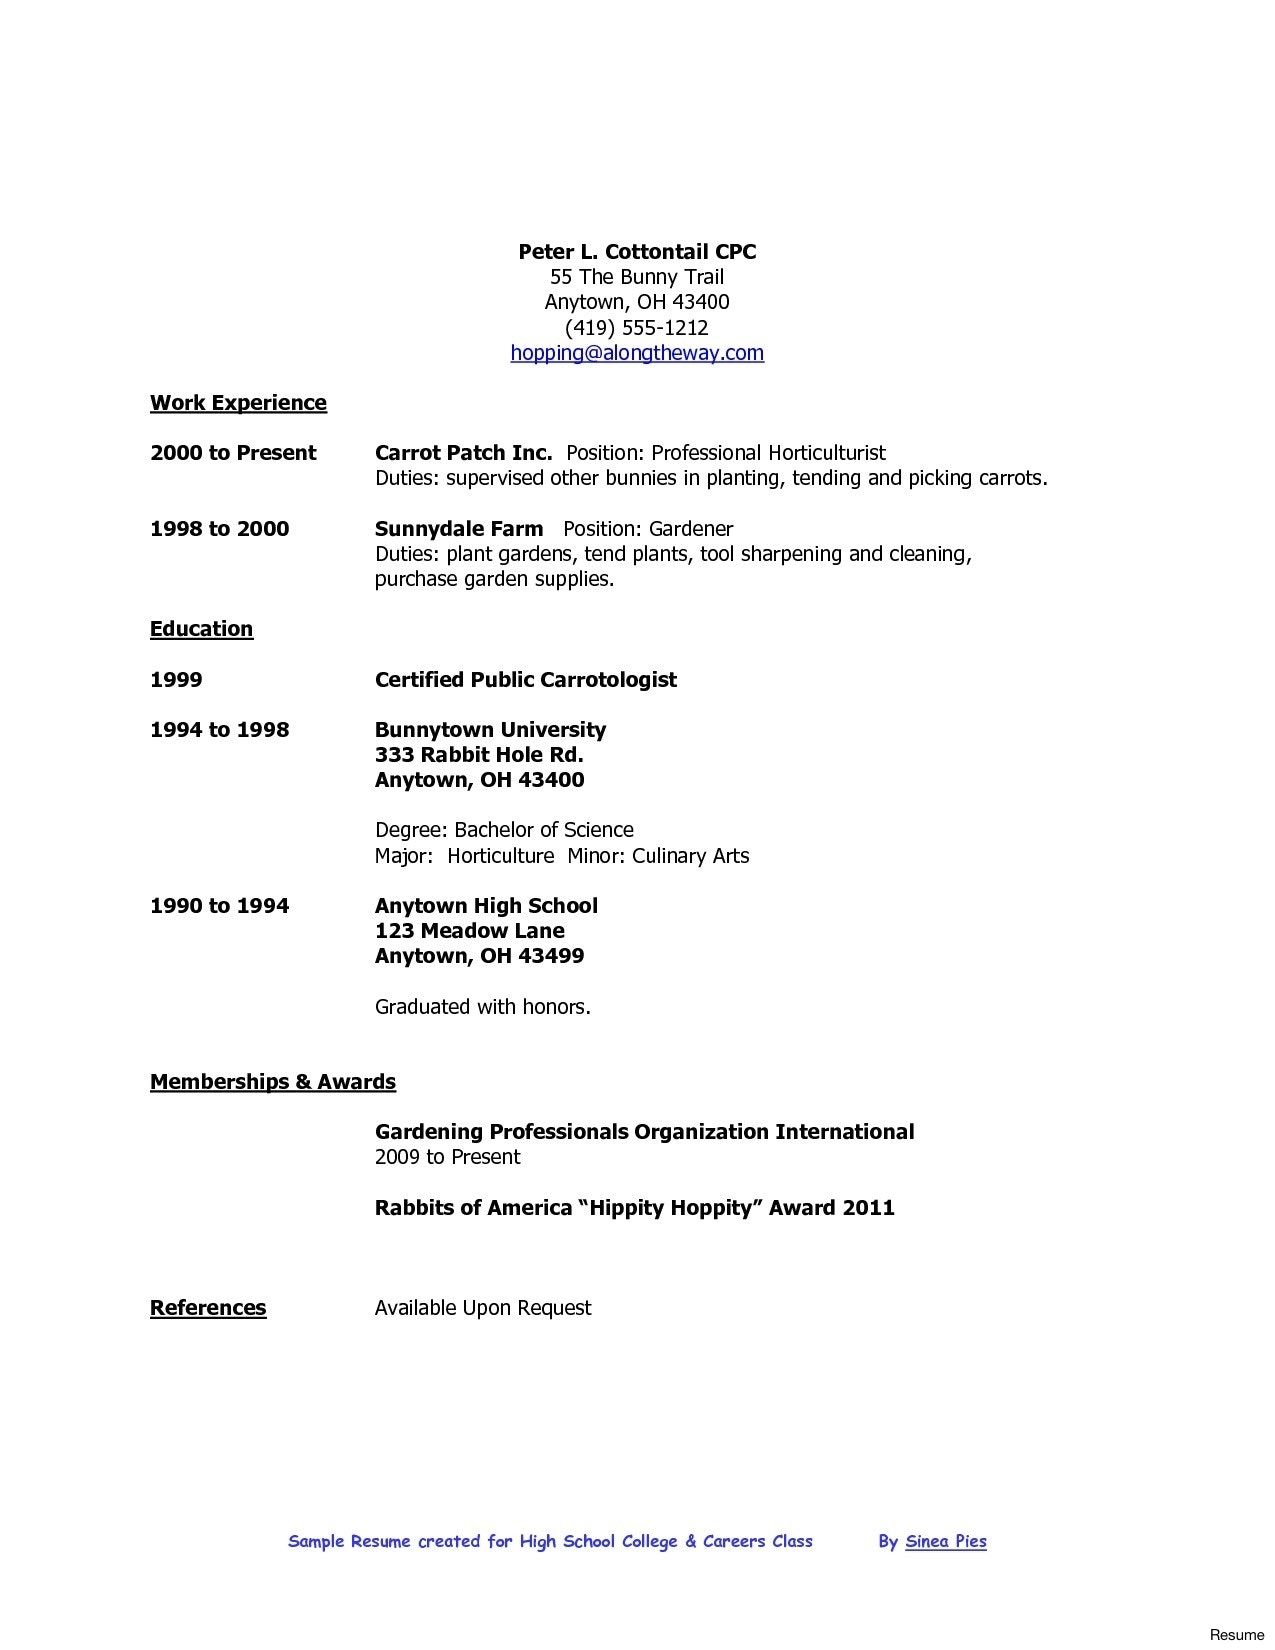 High School Graduate Resume Format Pinterest Sample Resume